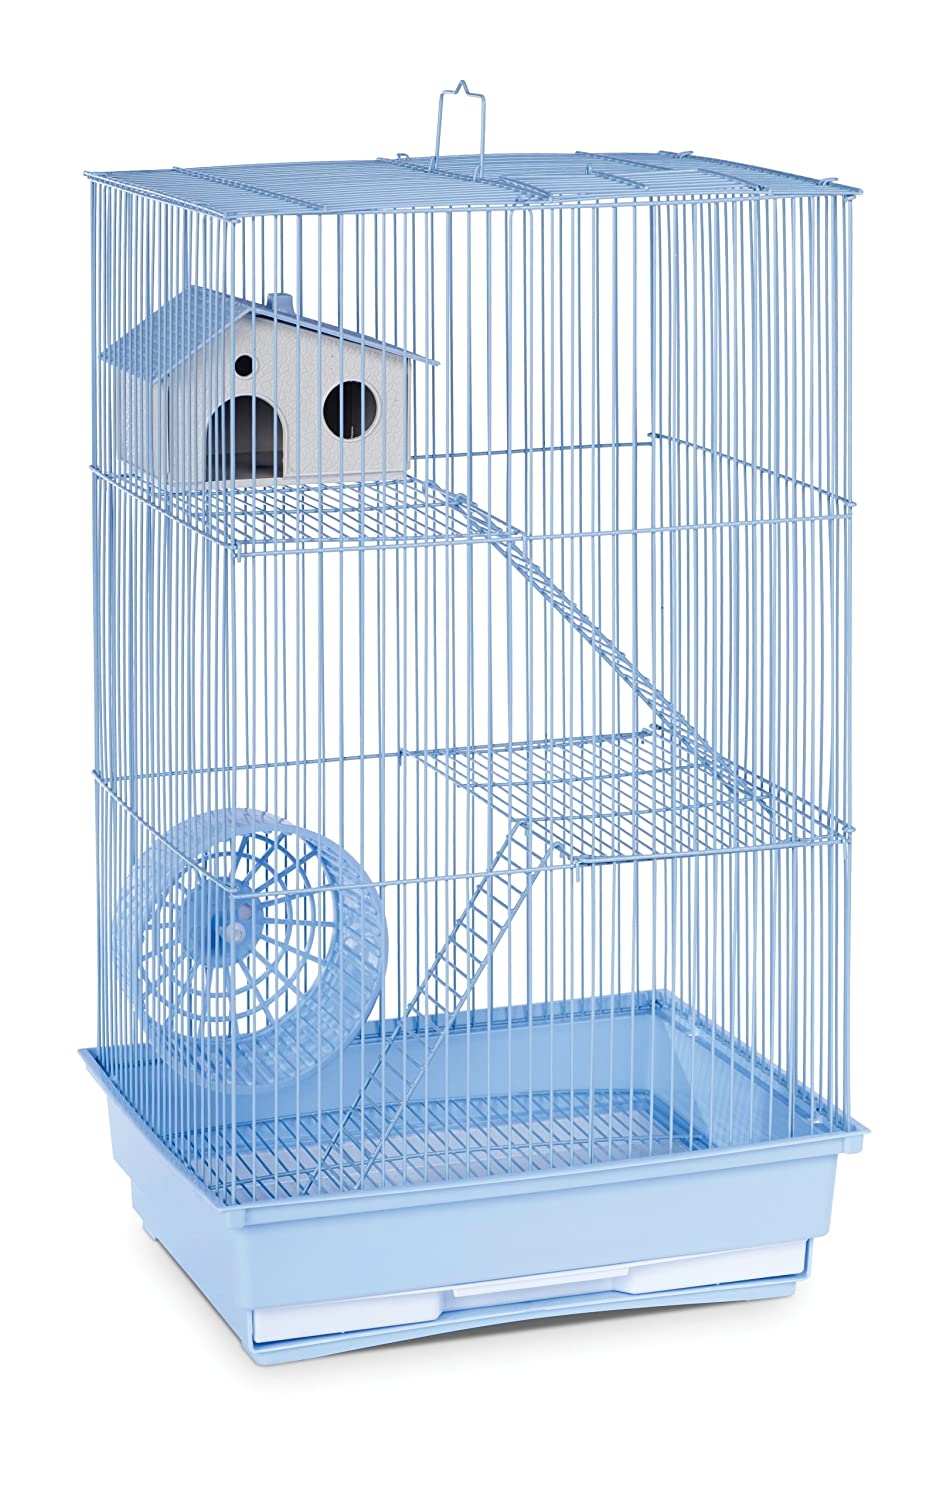 Prevue Hendryx SP2030B Three Story Hamster and Gerbil Cage, Light bluee